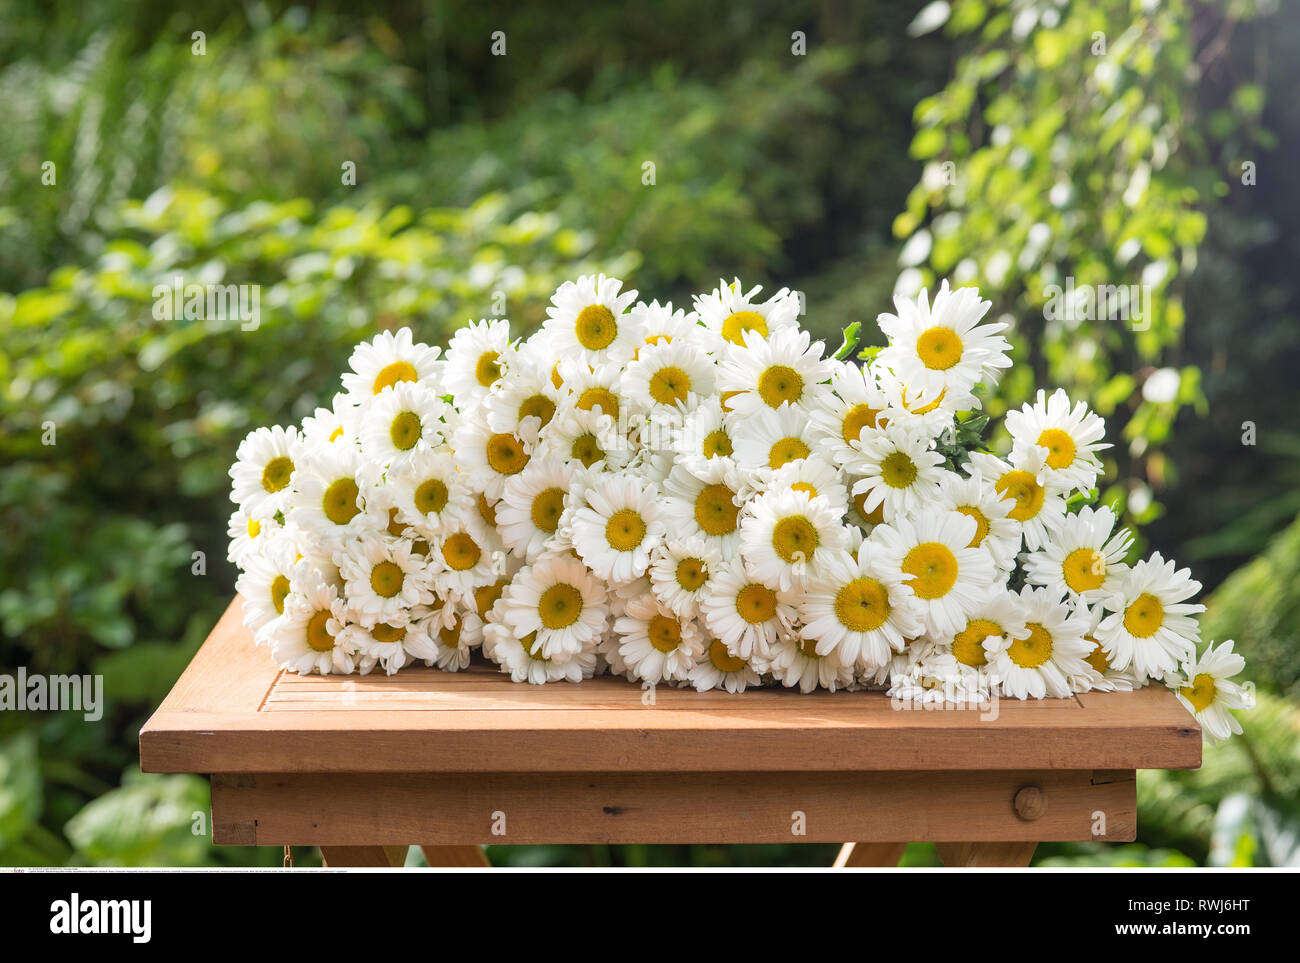 botany, leucanthemum maximum, Caution! For Greetingcard-Use / Postcard-Use In German Speaking Countries Certain Restrictions May Apply - Stock Image